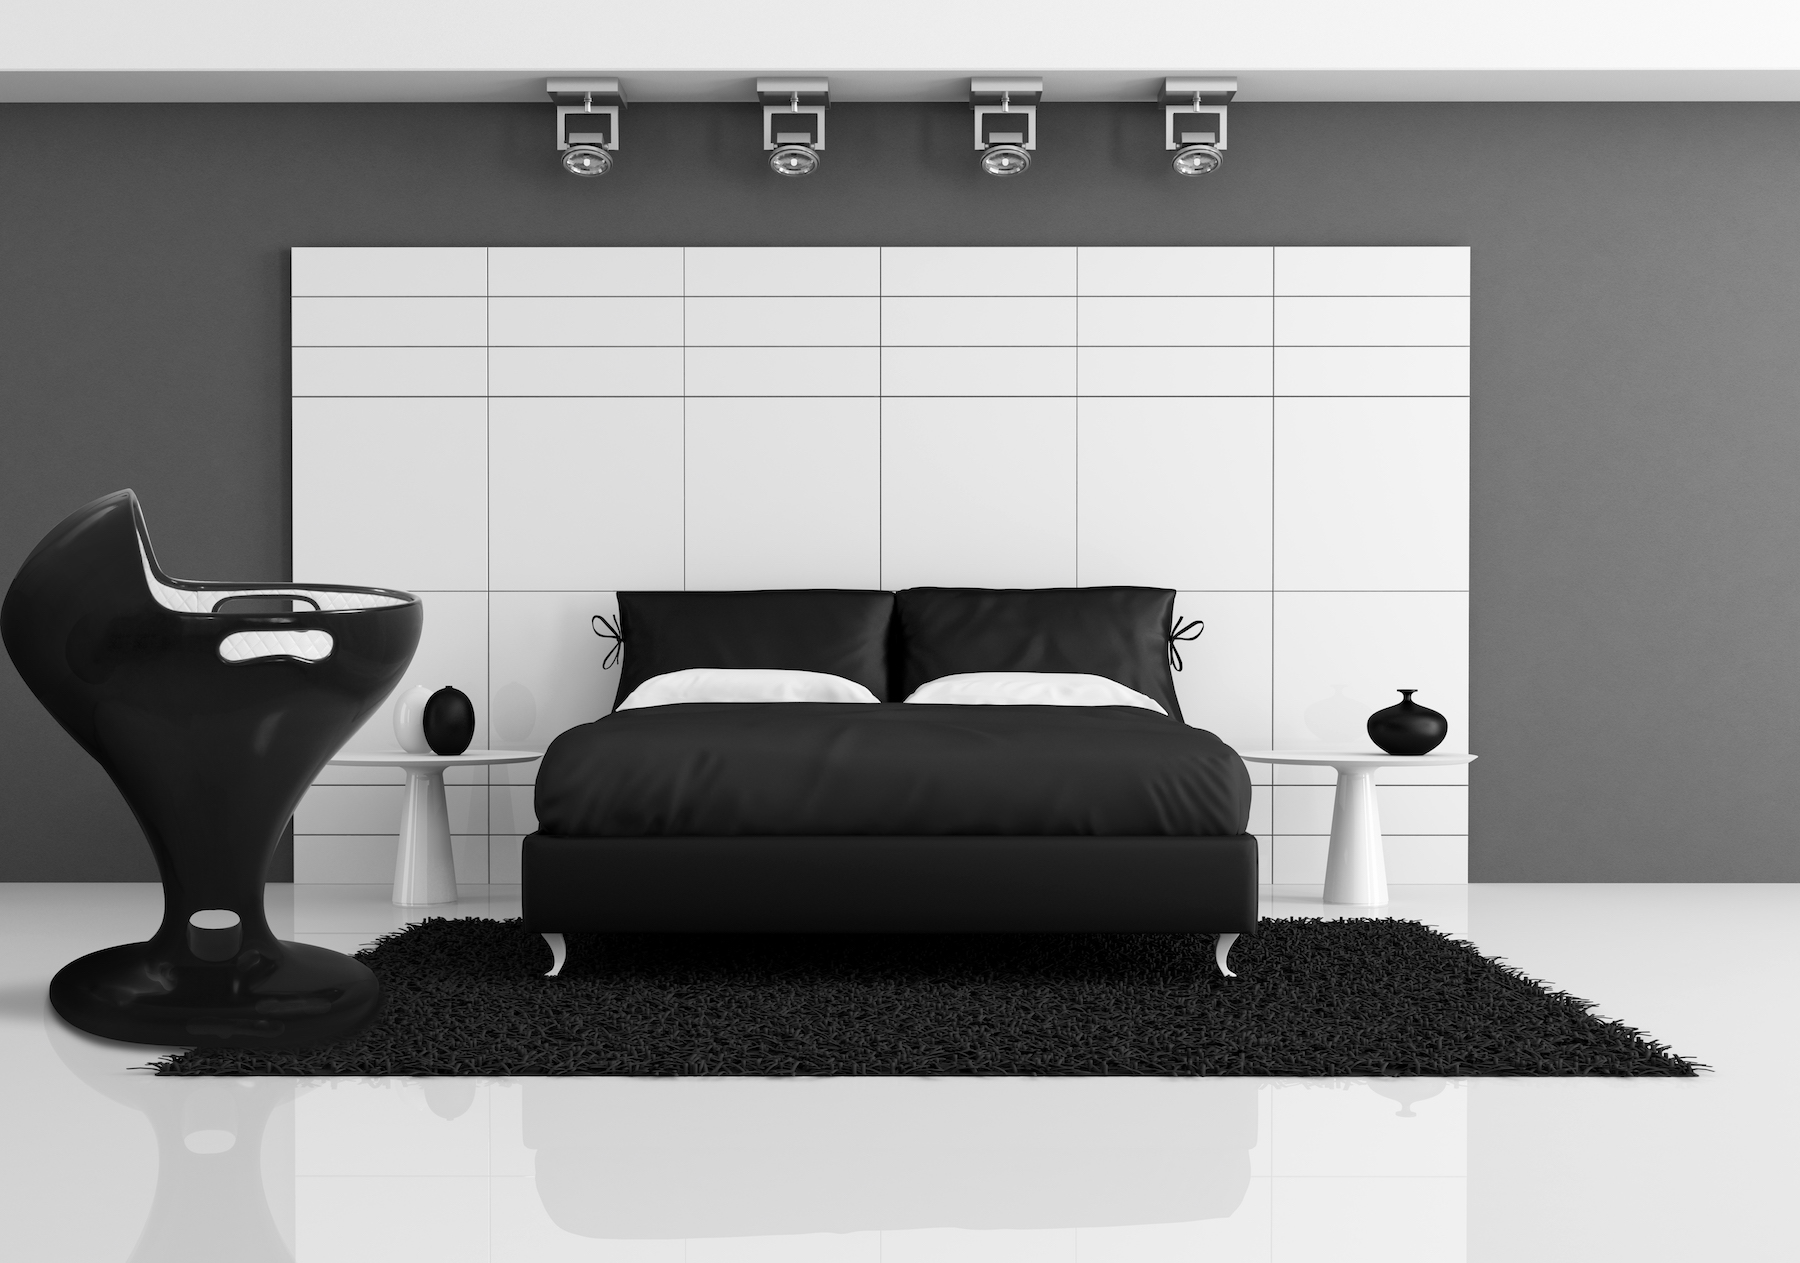 black and white bedroom with double bed against white panel - rendering